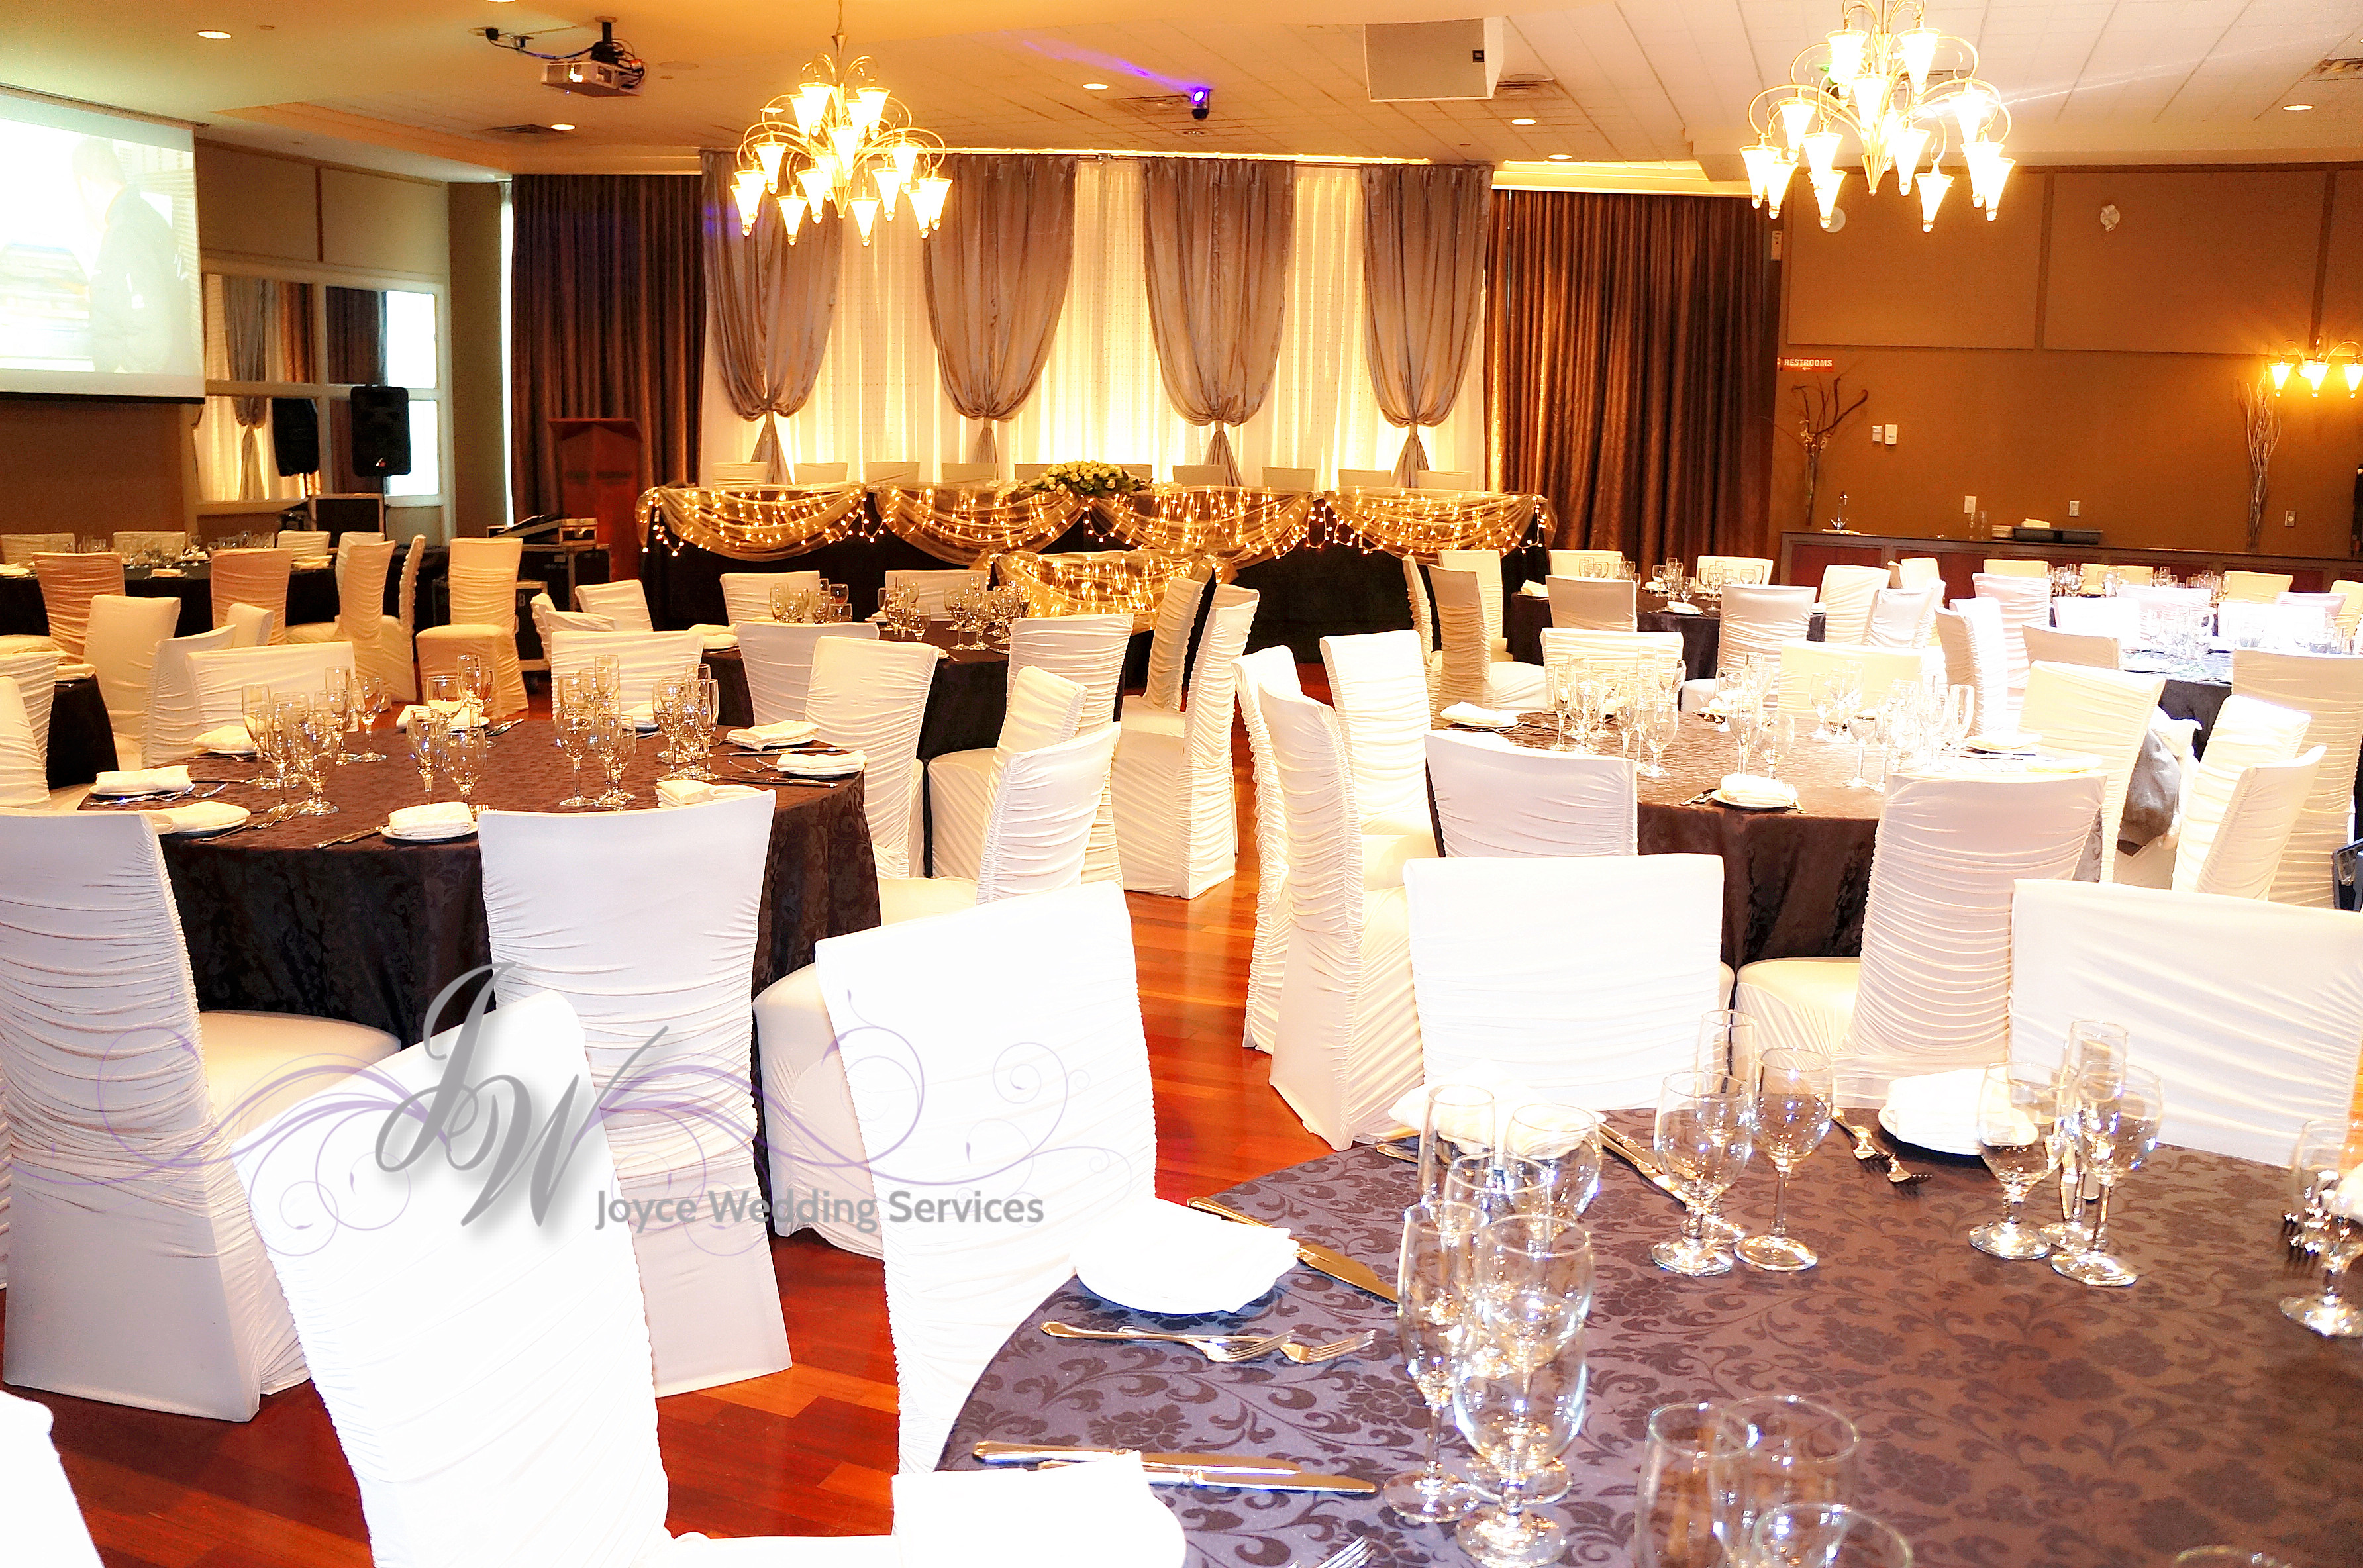 wedding chair covers reddit posture insert venuedecor reception silver twinklelight chaircover